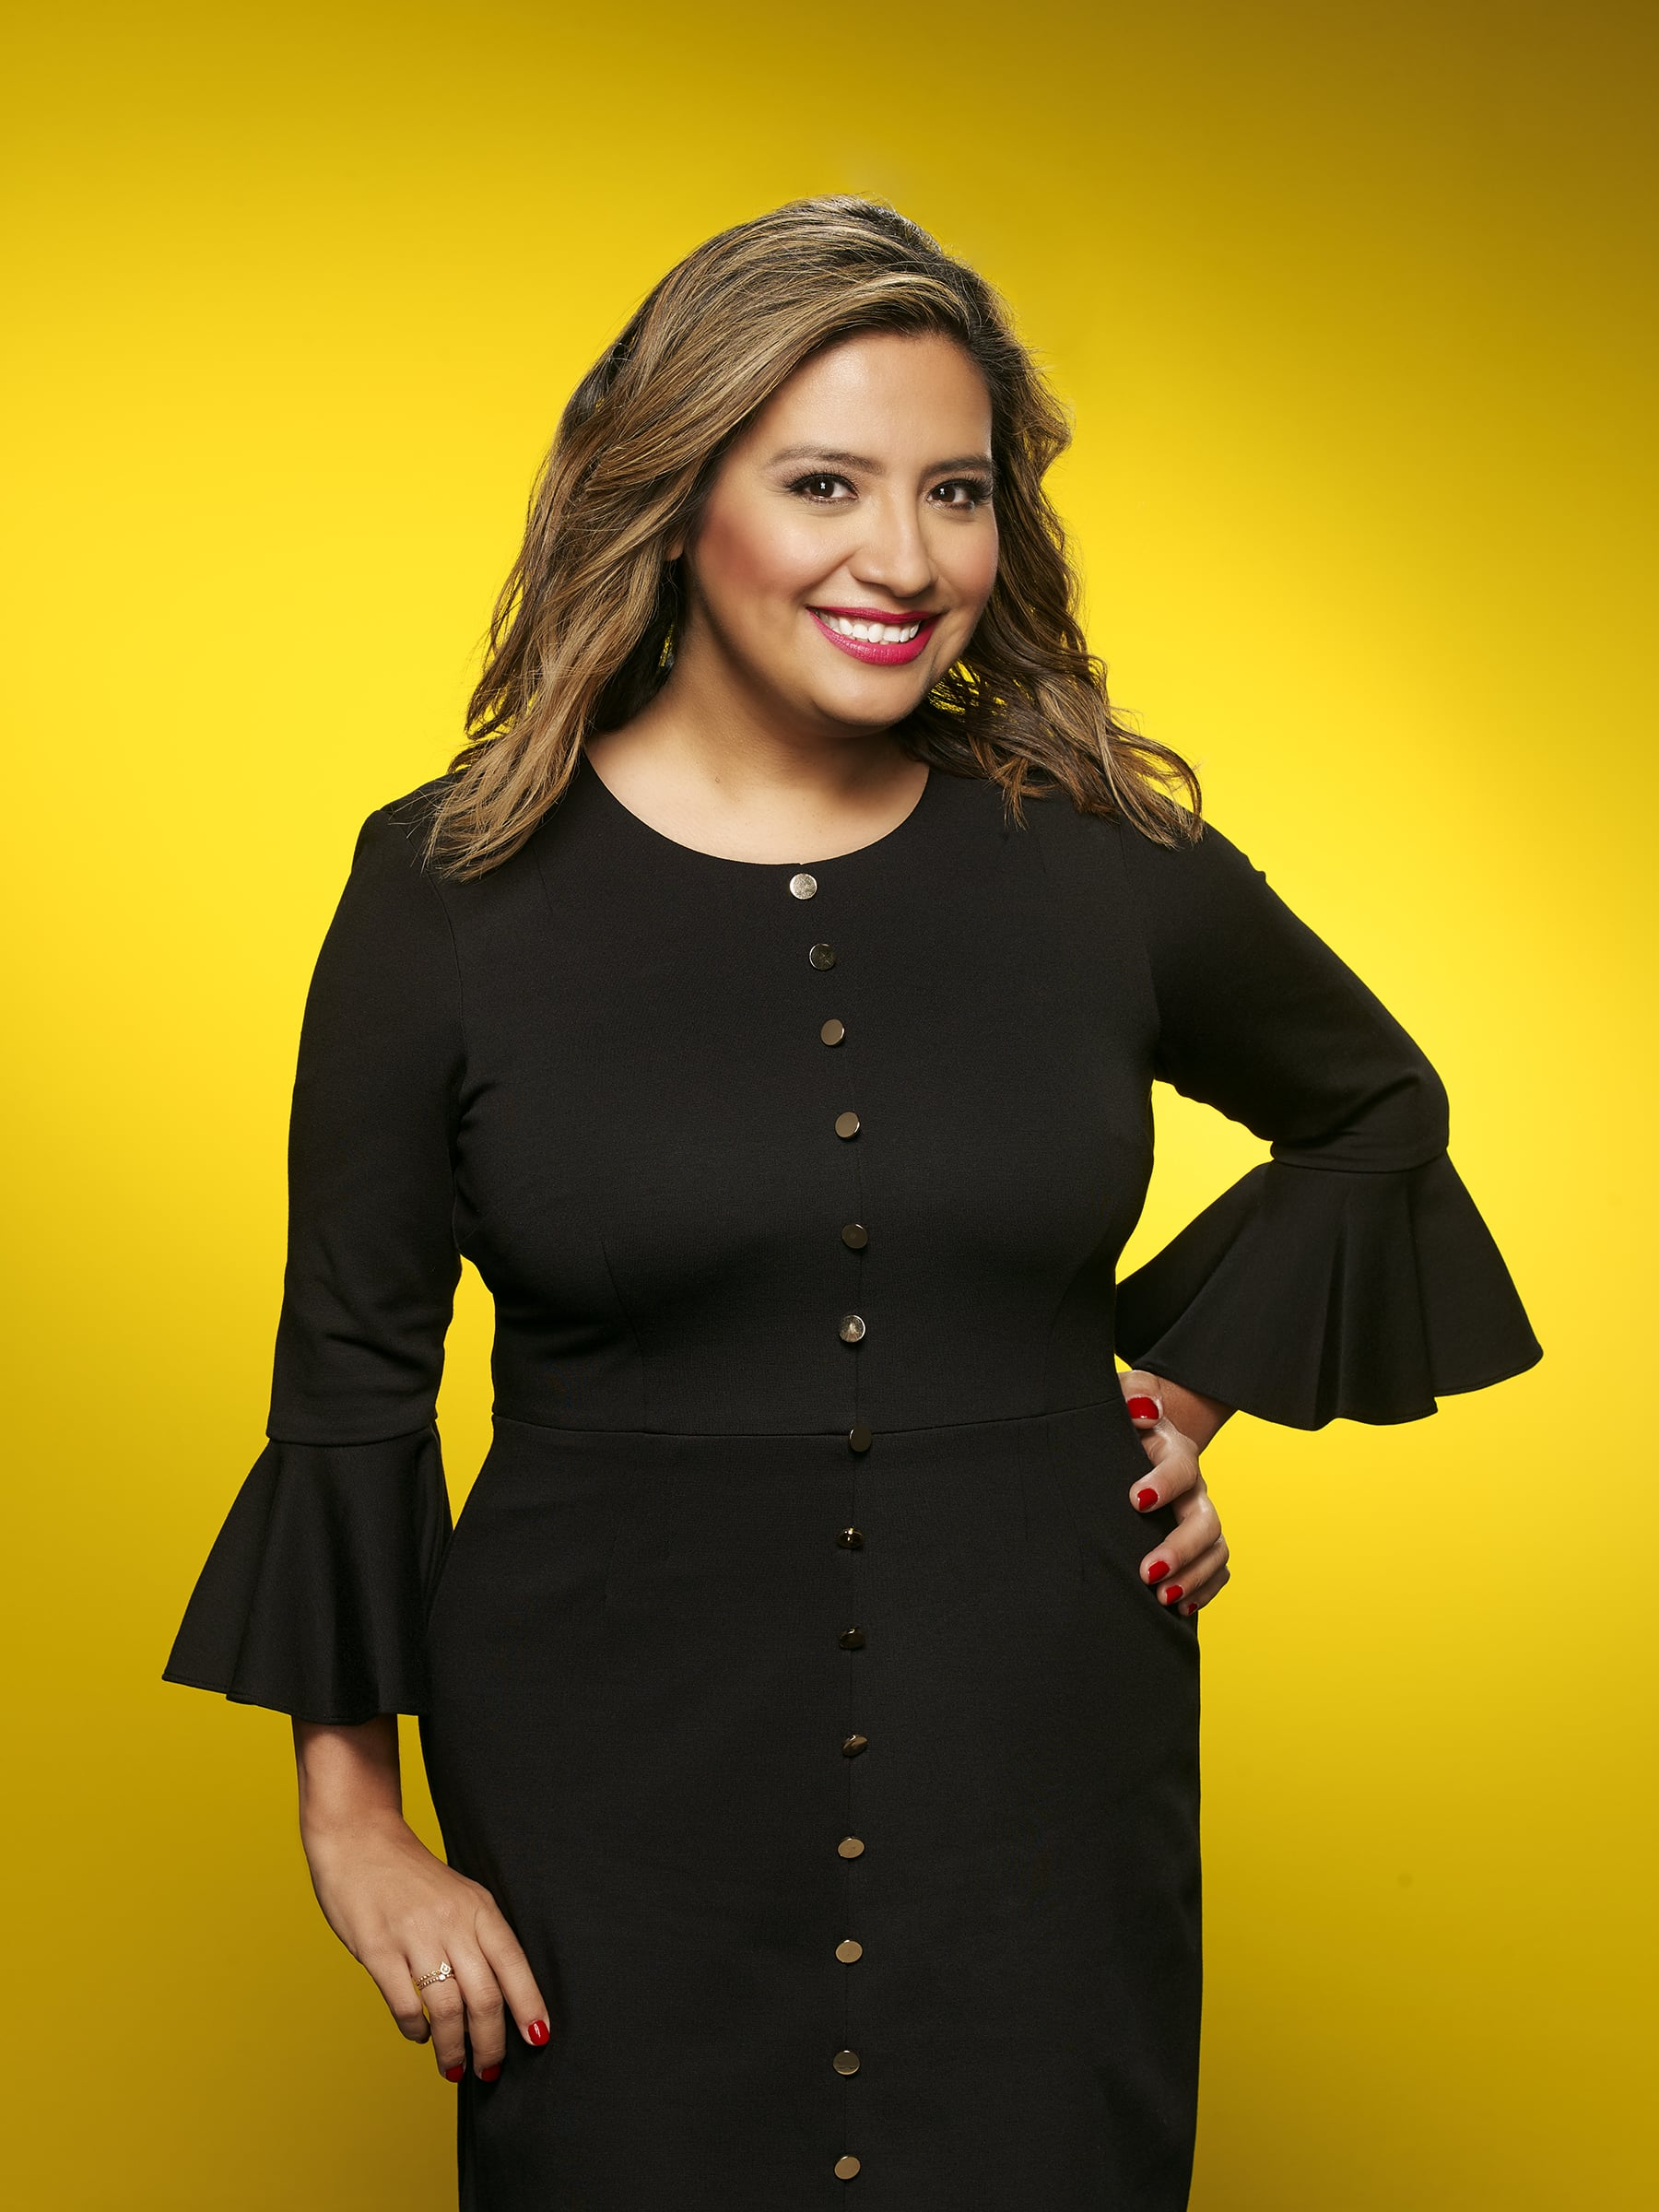 cristela alonzo u0026 39 s essay on chasing your dreams